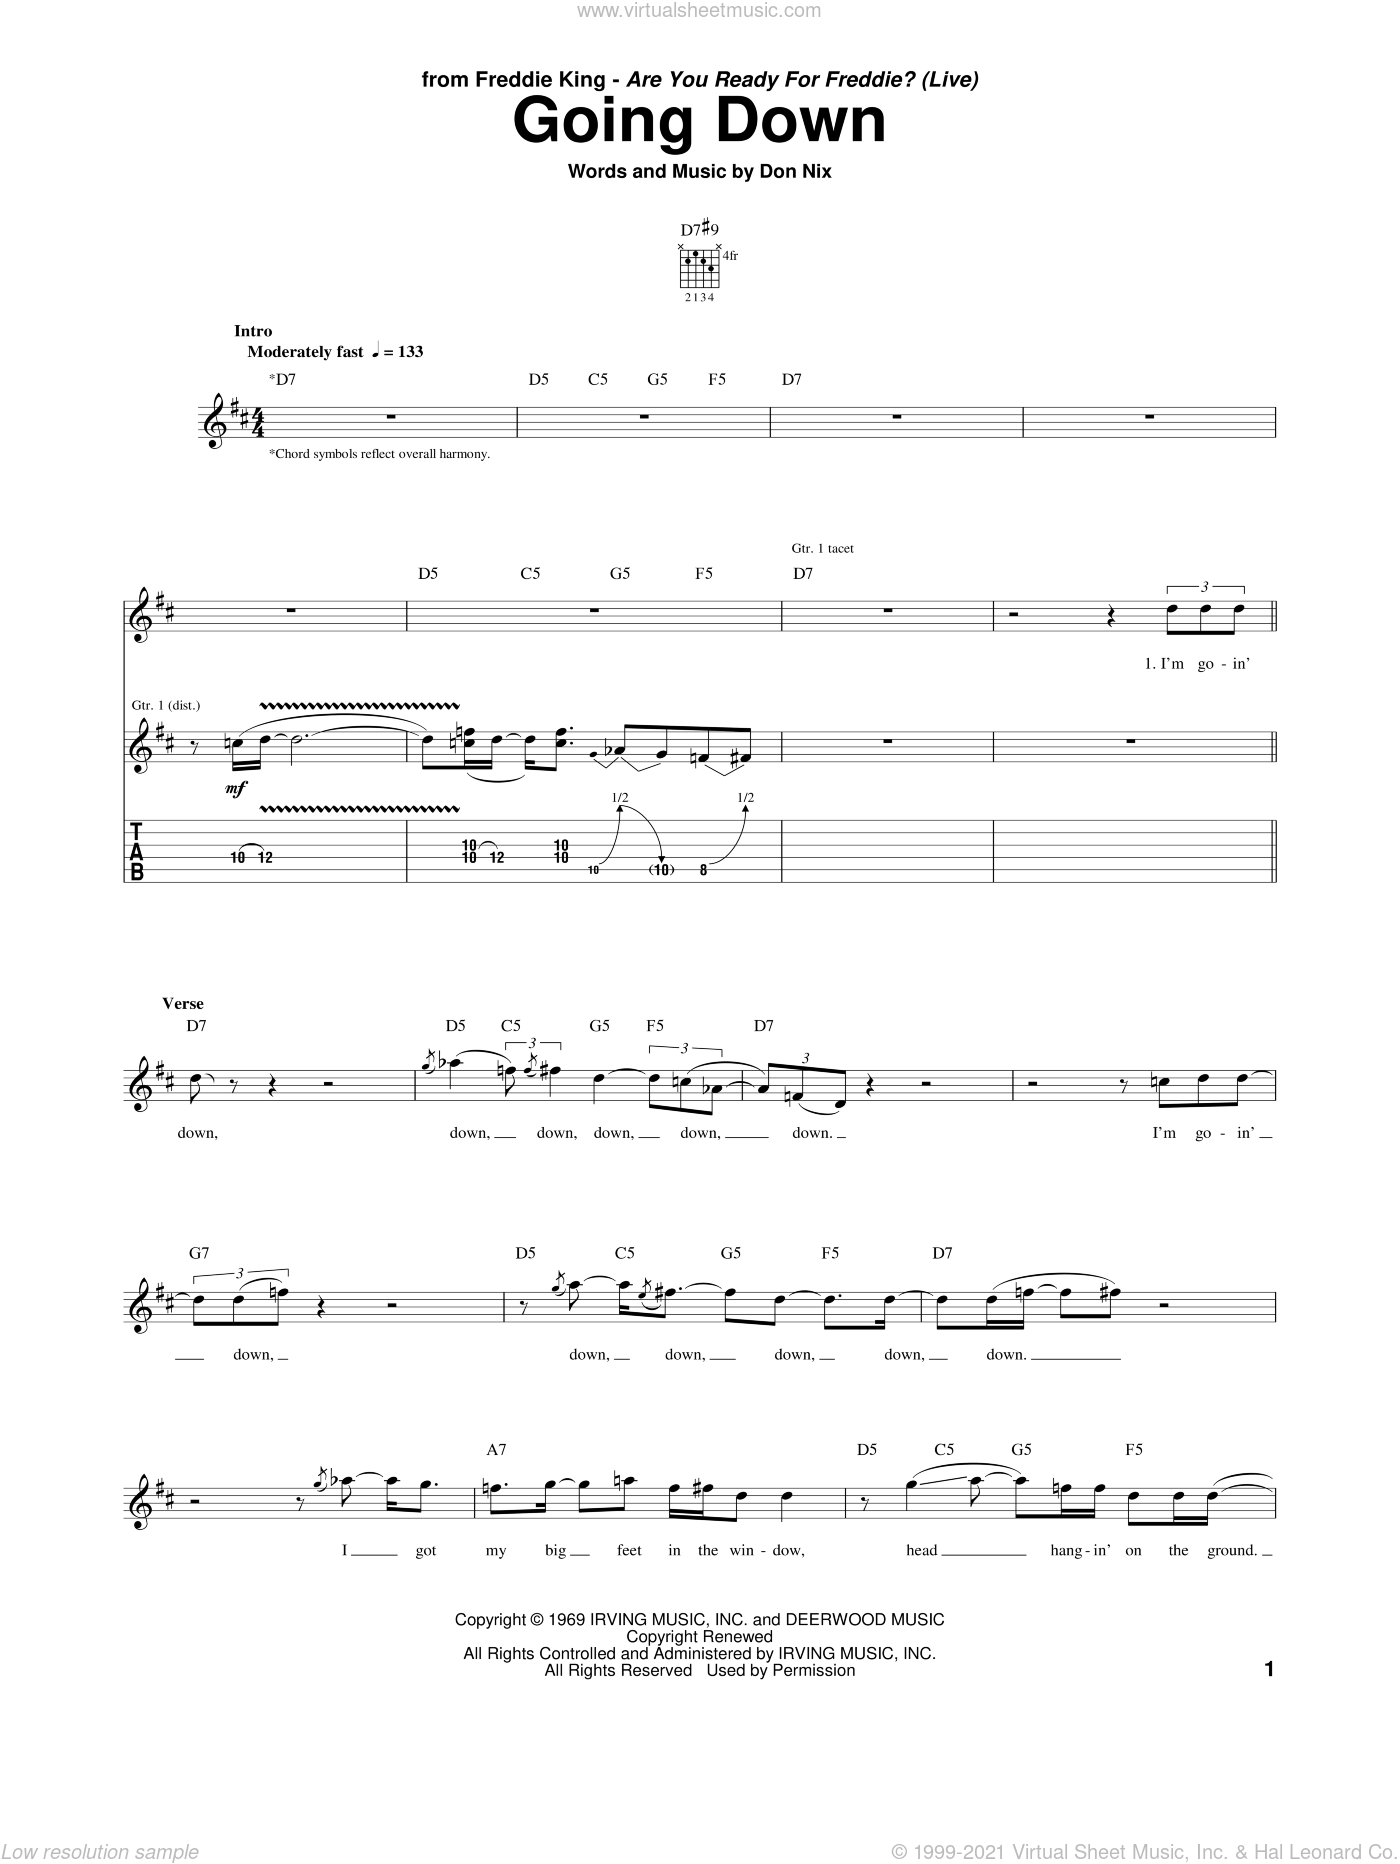 Going Down sheet music for guitar (tablature) by Freddie King